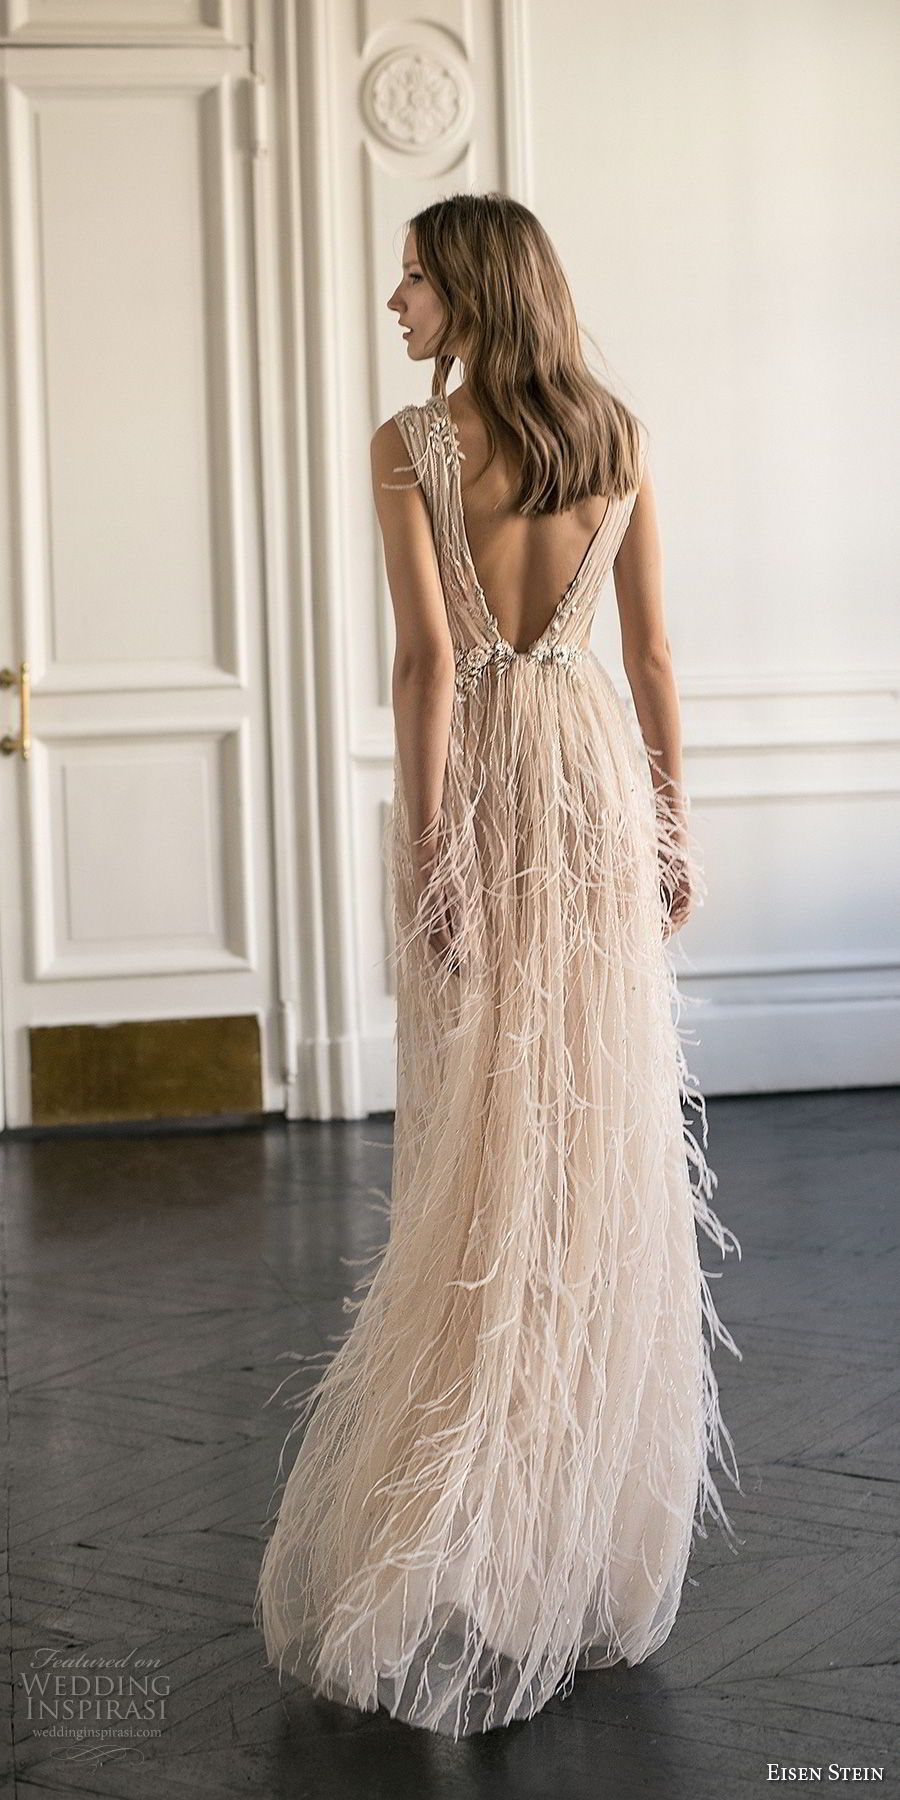 eisen stein 2018 bridal sleeveless deep v neck full embellishment high slit fringe skirt romantic soft a line wedding dress sweep train (11) bv -- Eisen Stein 2018 Wedding Dress #beautydresses